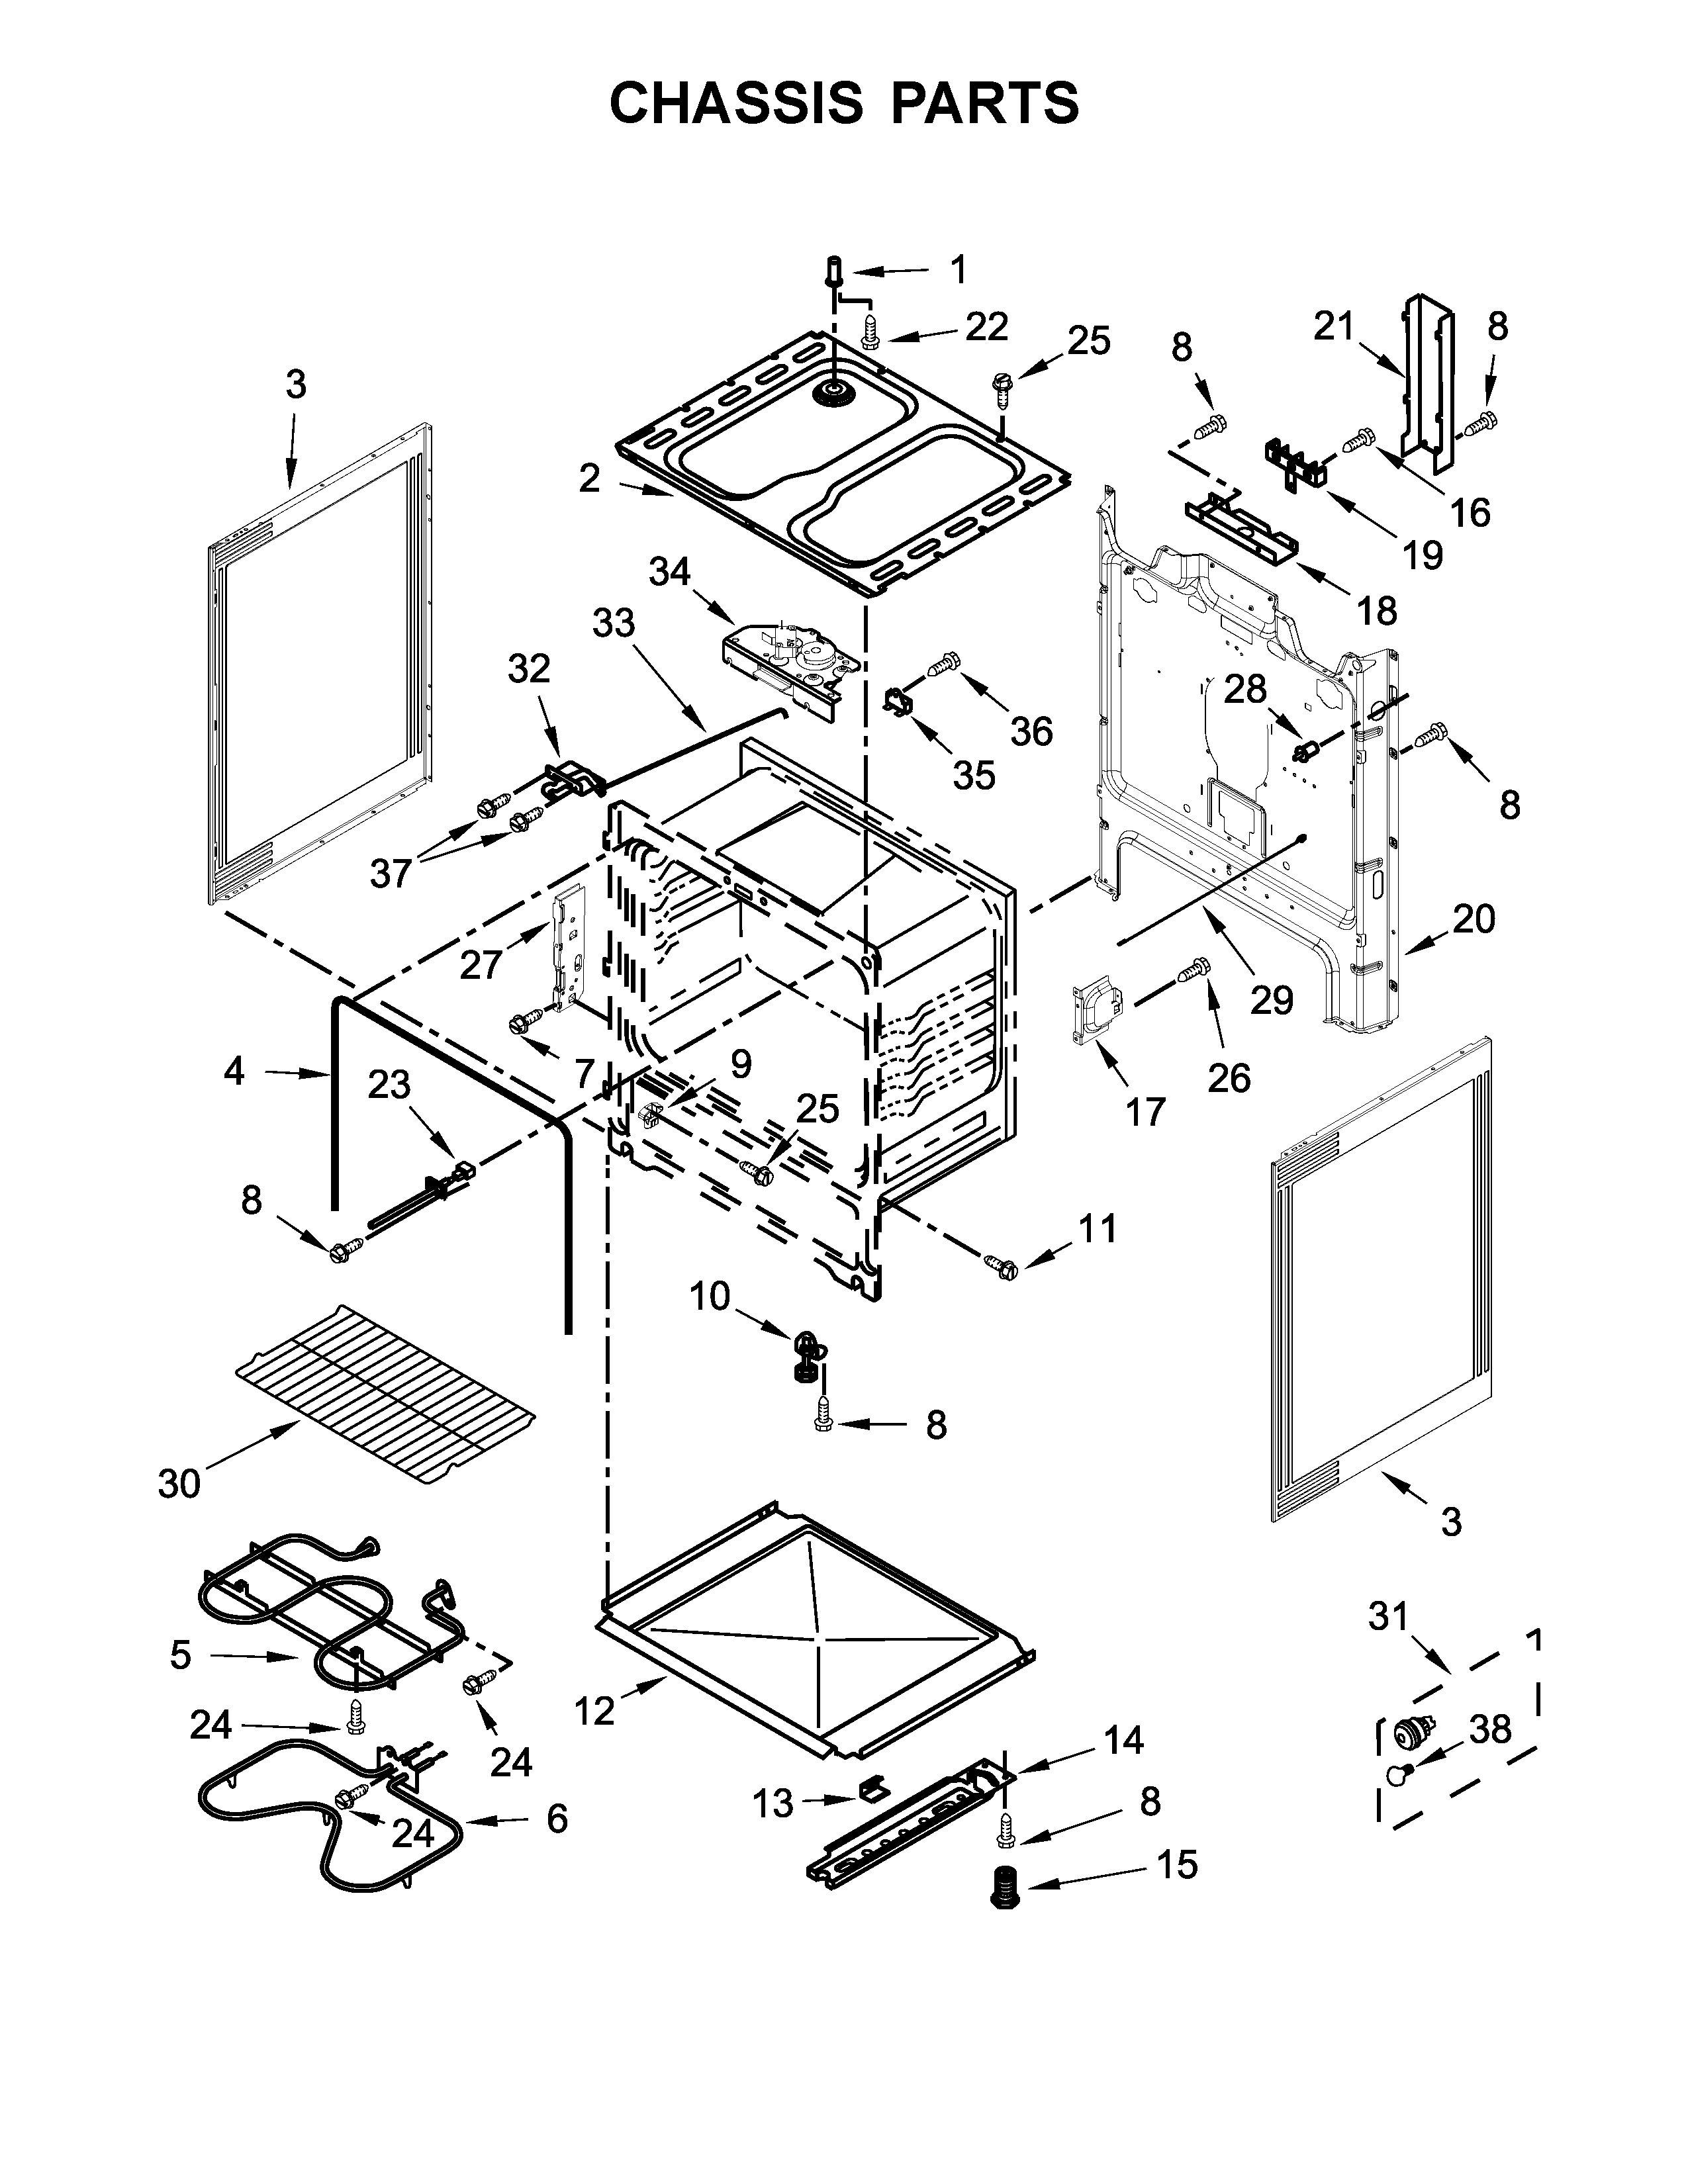 Whirlpool WFC310S0ES1 chassis parts diagram